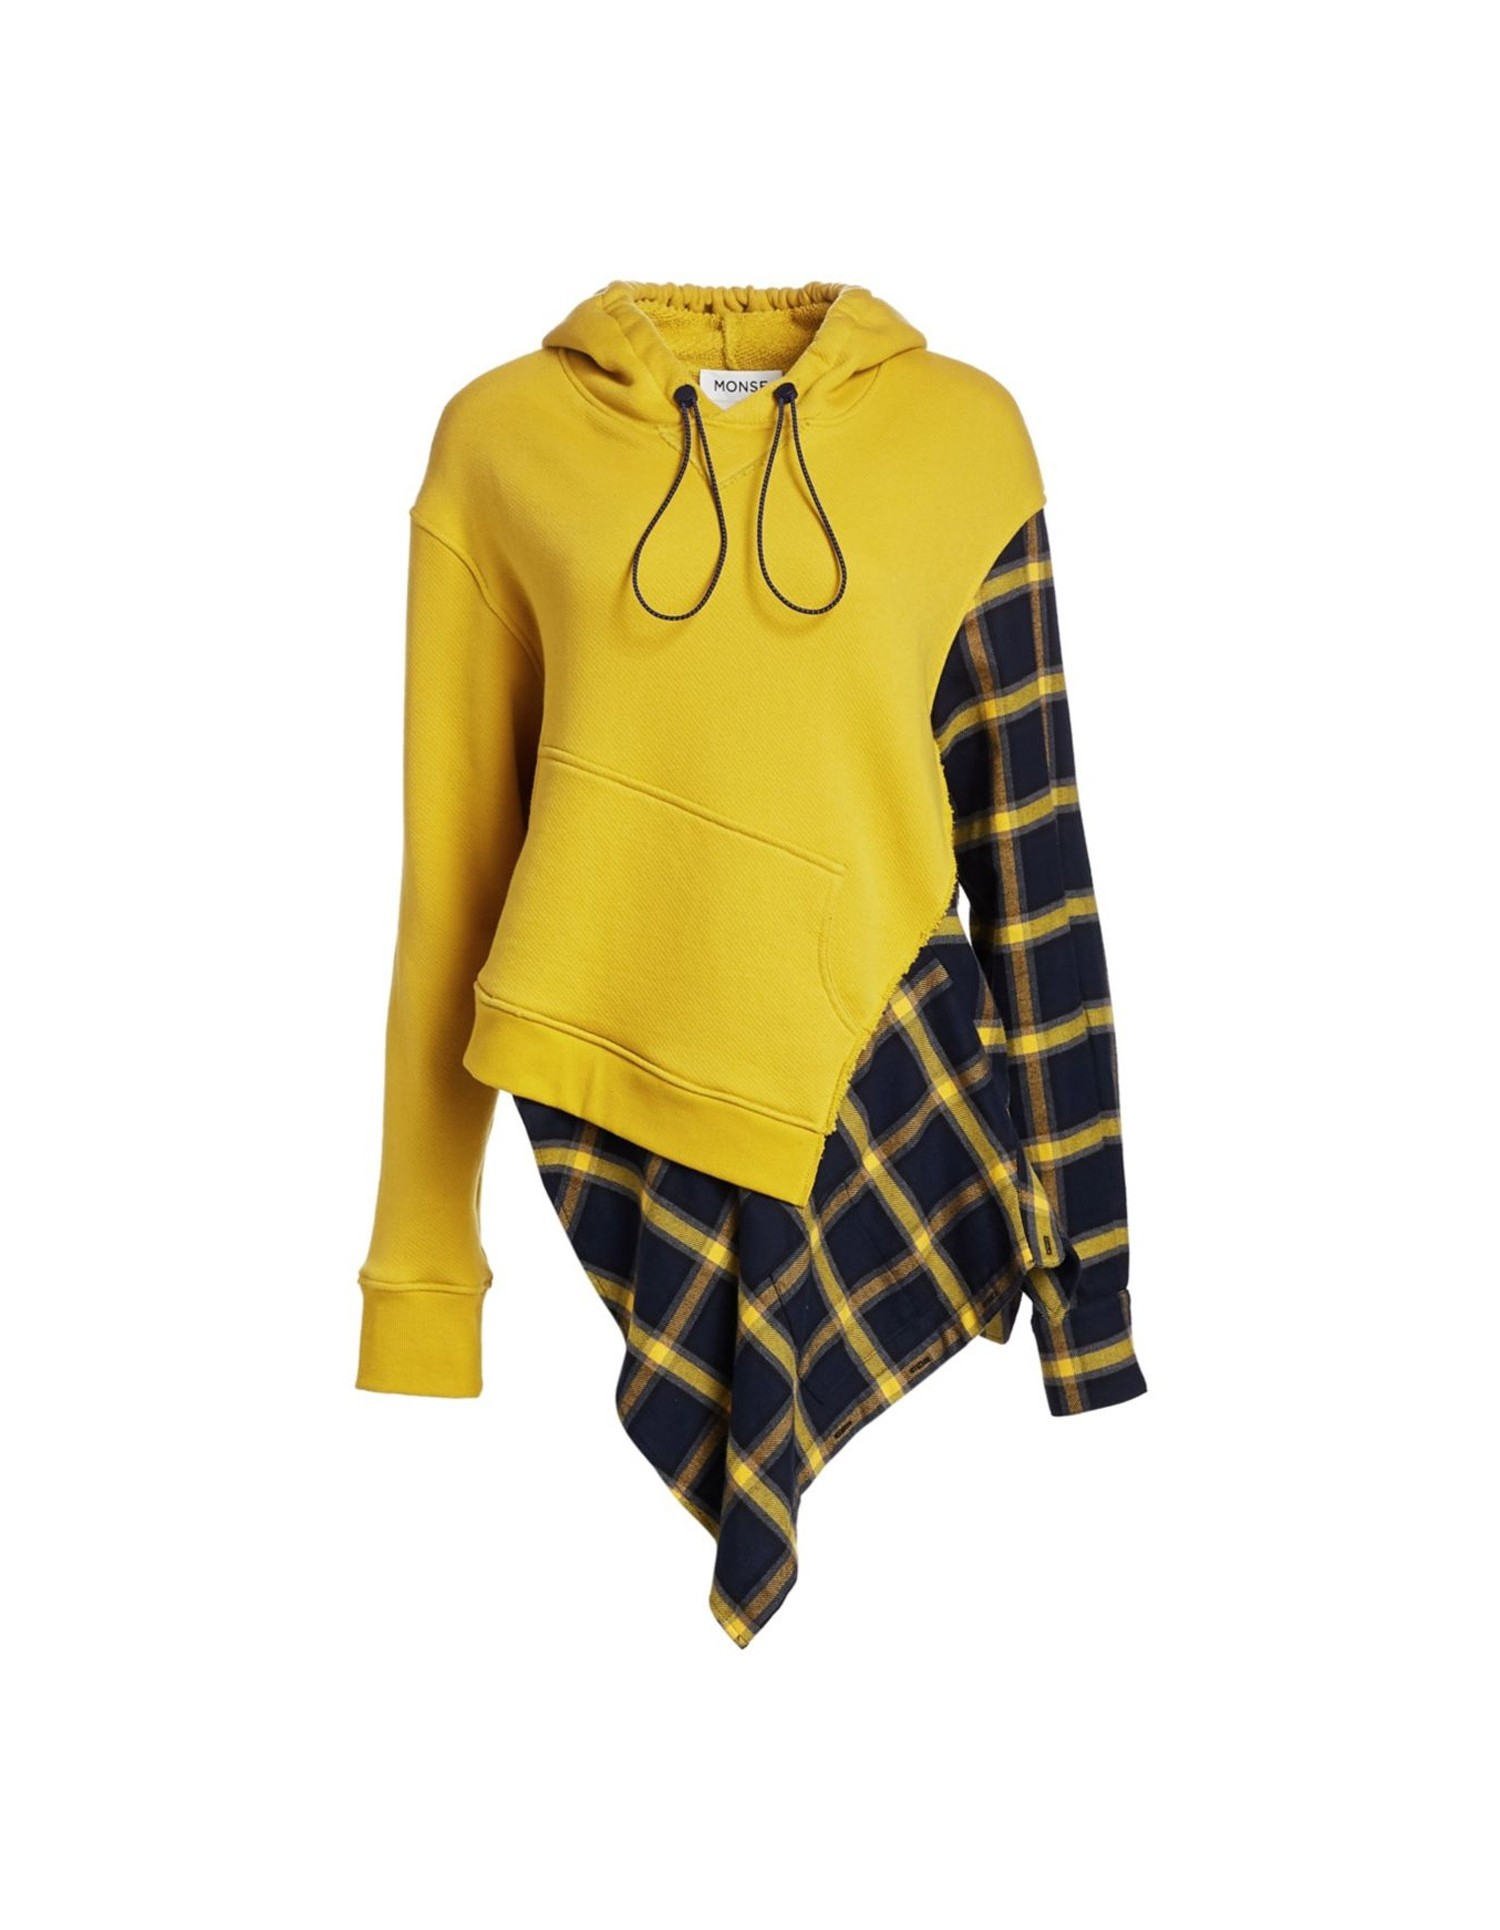 MONSE Flannel Cascade Hoodie Flat Front